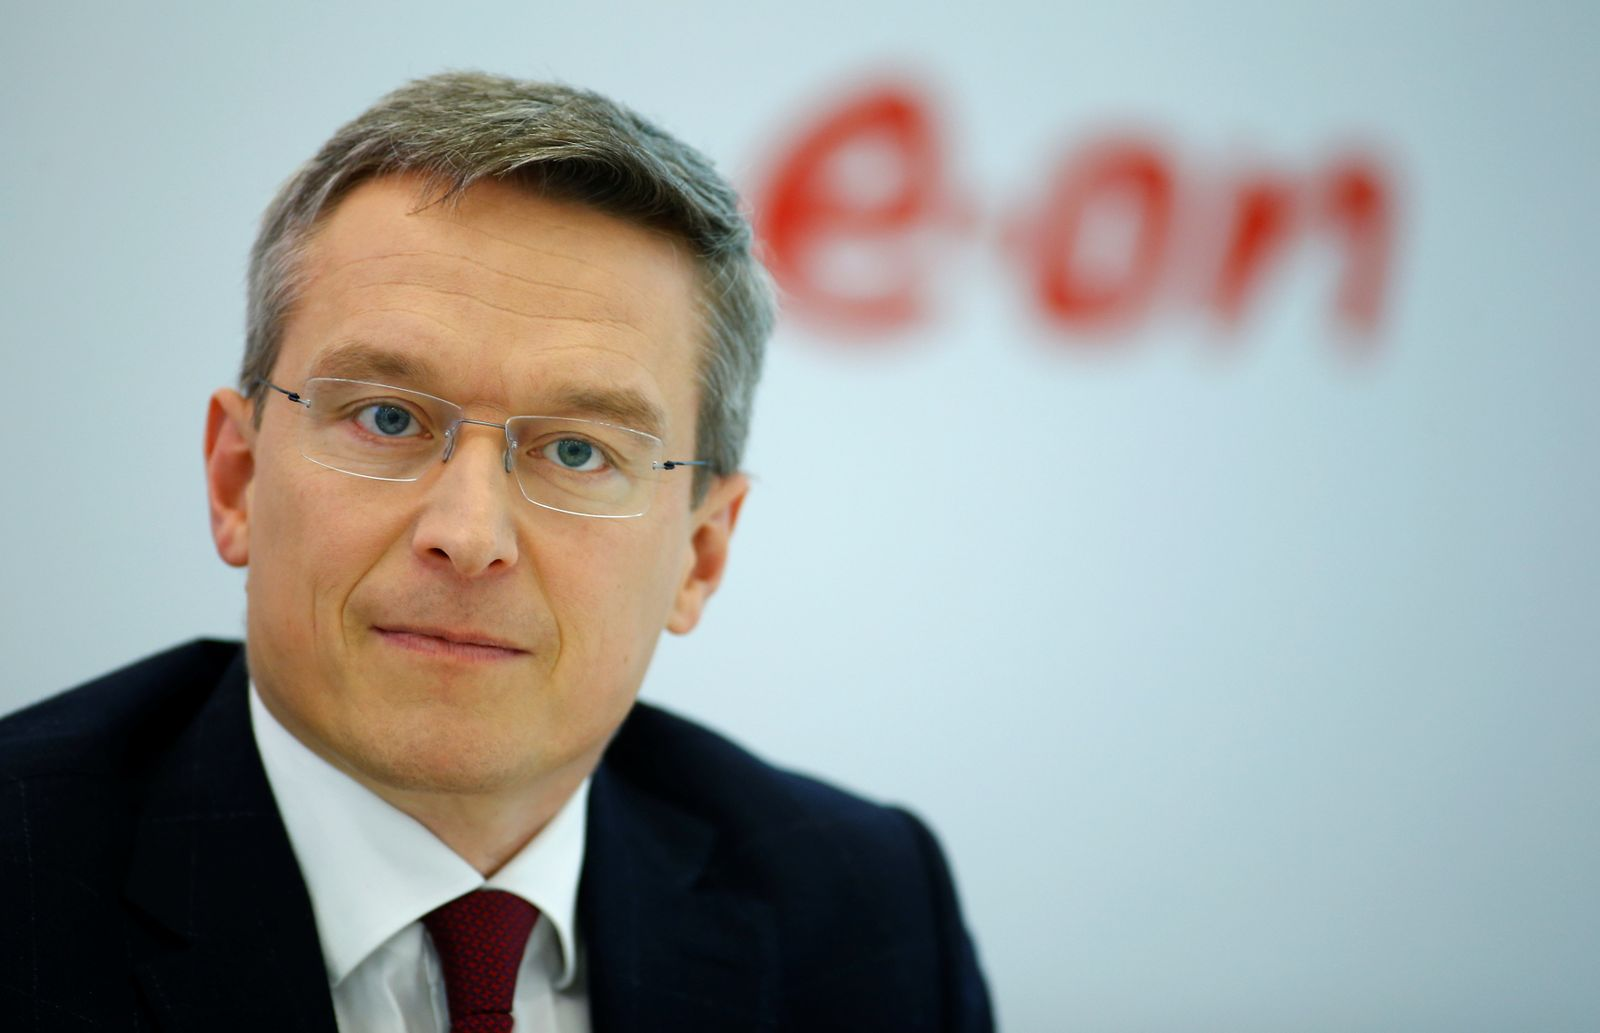 FILE PHOTO: E.ON Chief Operating Officer Commercial Wildberger during annual news conference in Essen